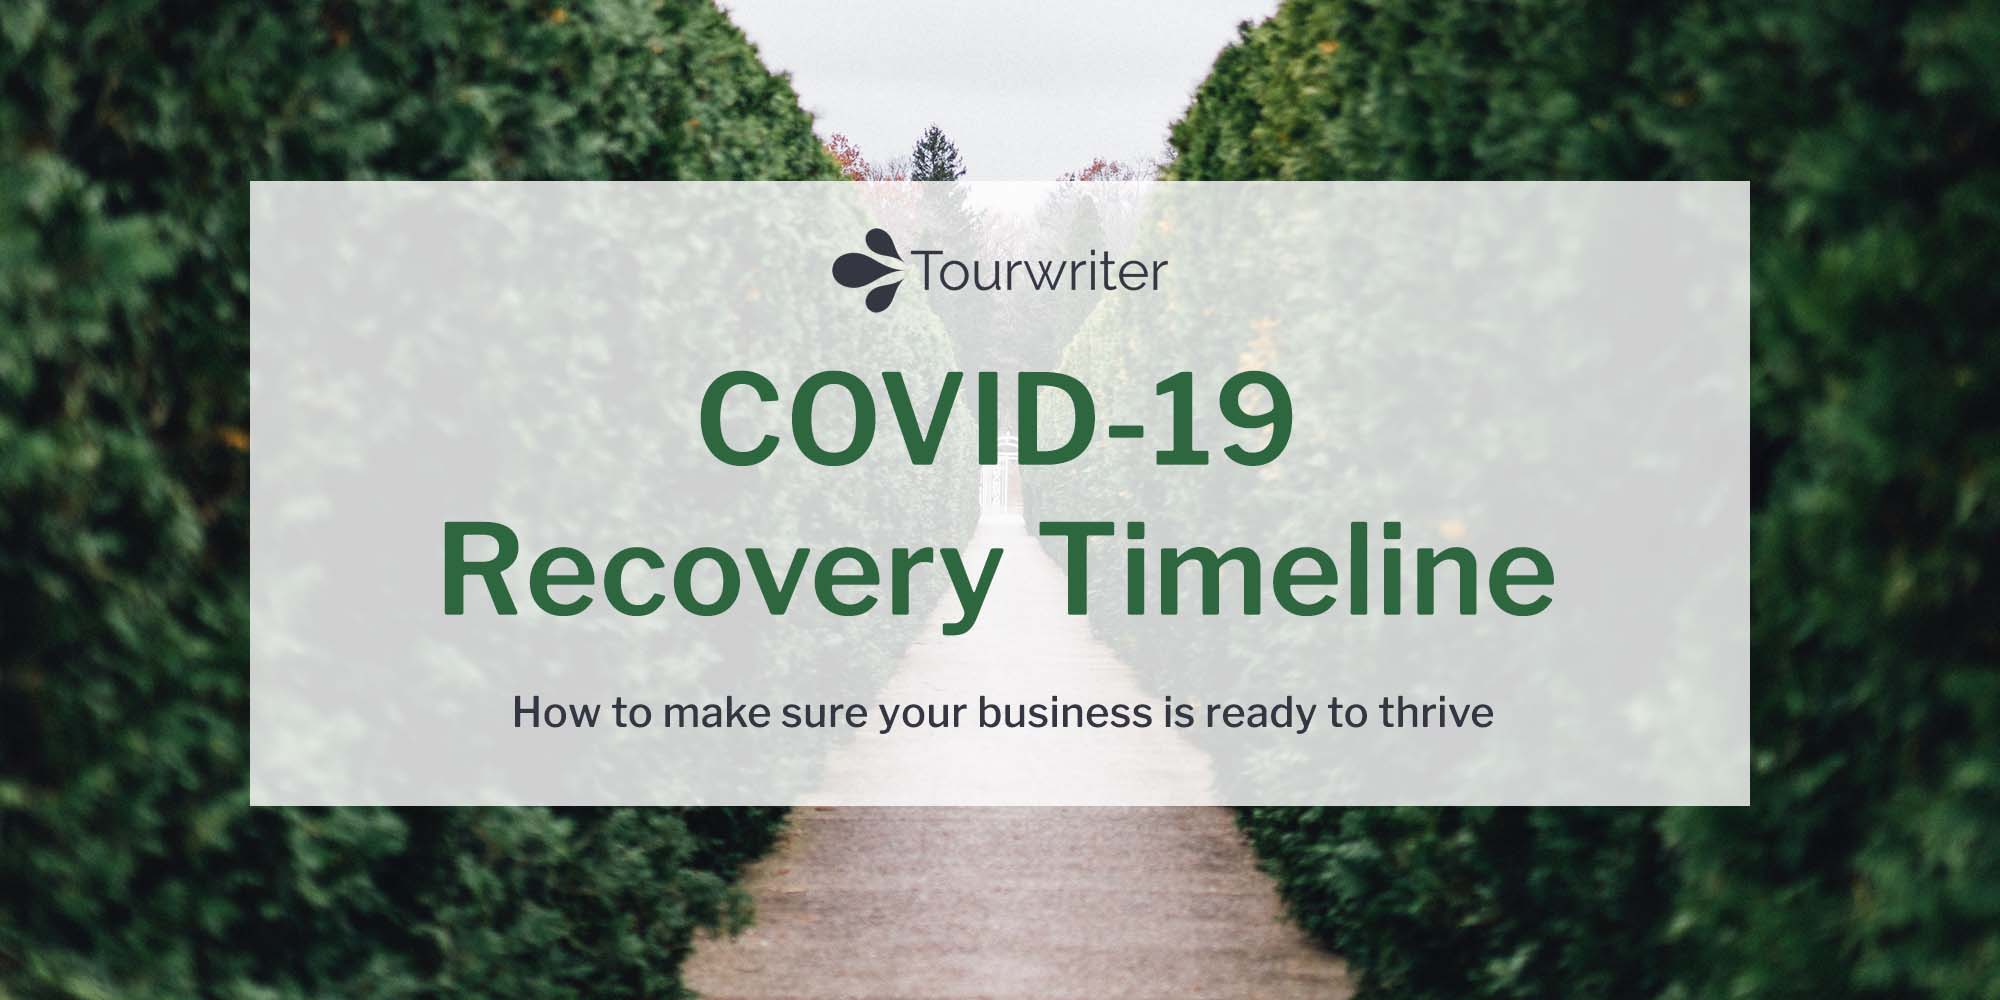 COVID-19: The Tour Operator's Recovery Timeline